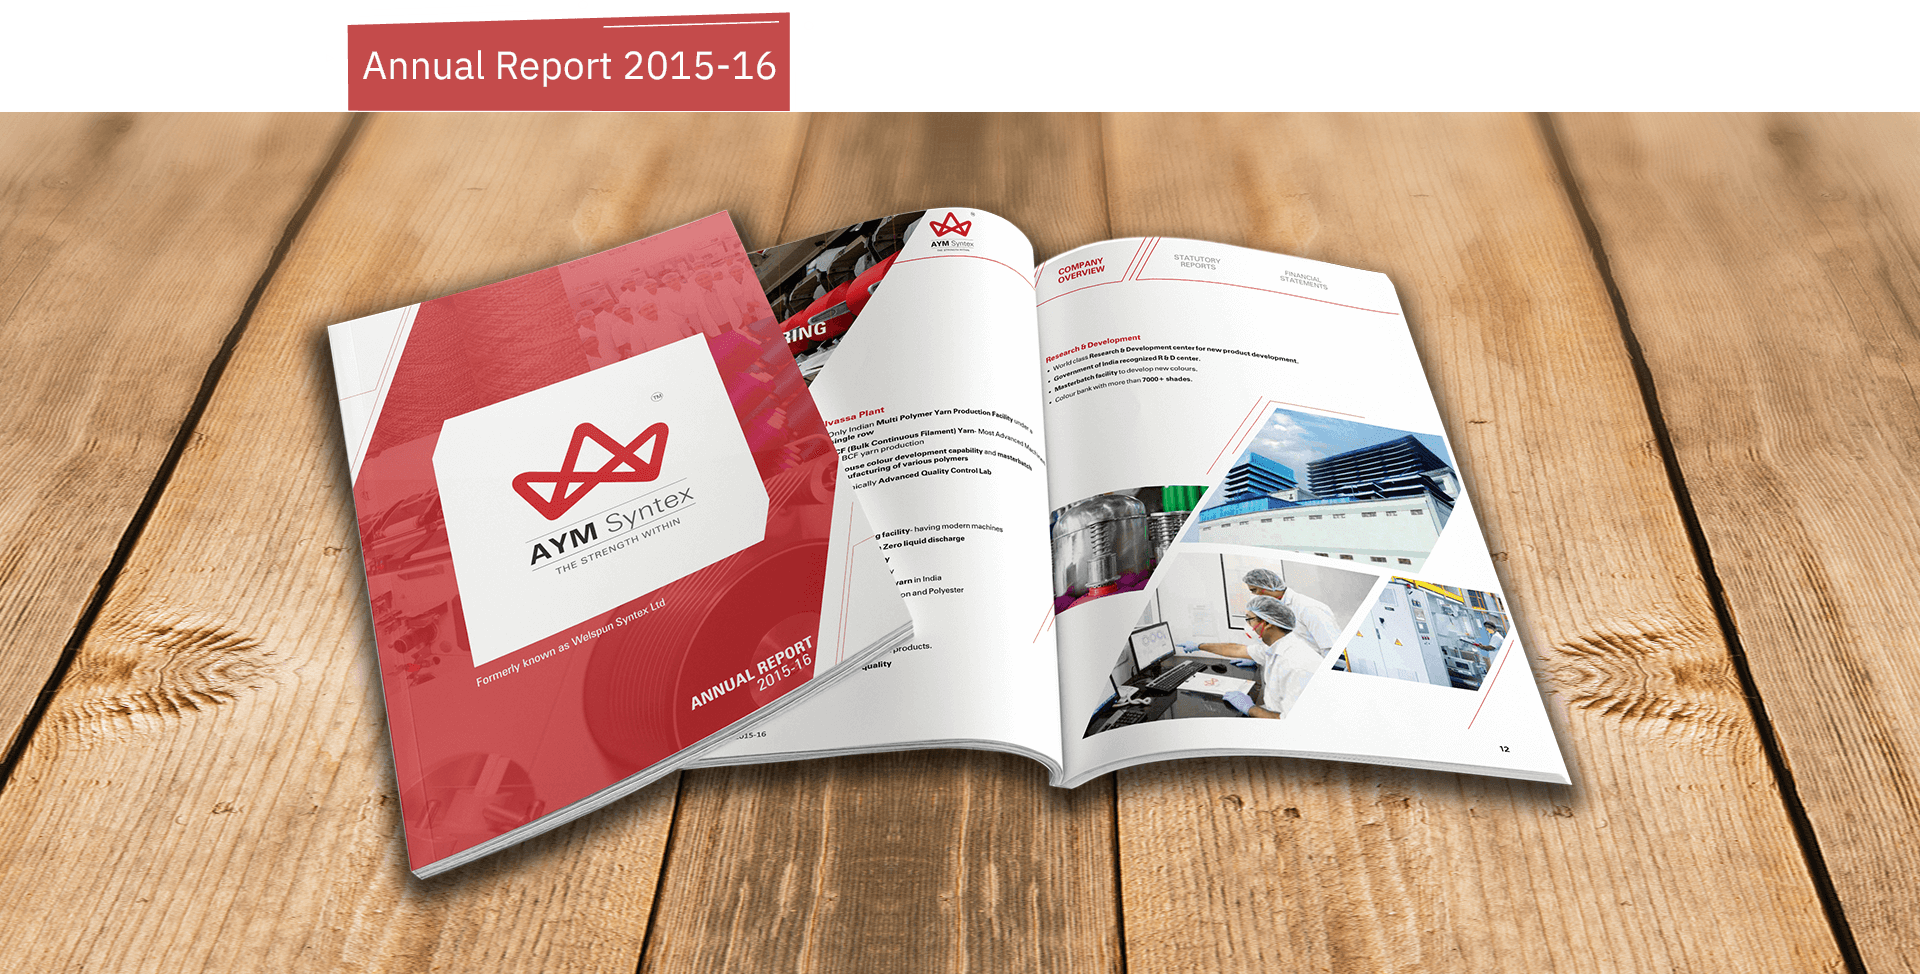 AYM Syntex Annual Report 2015-16